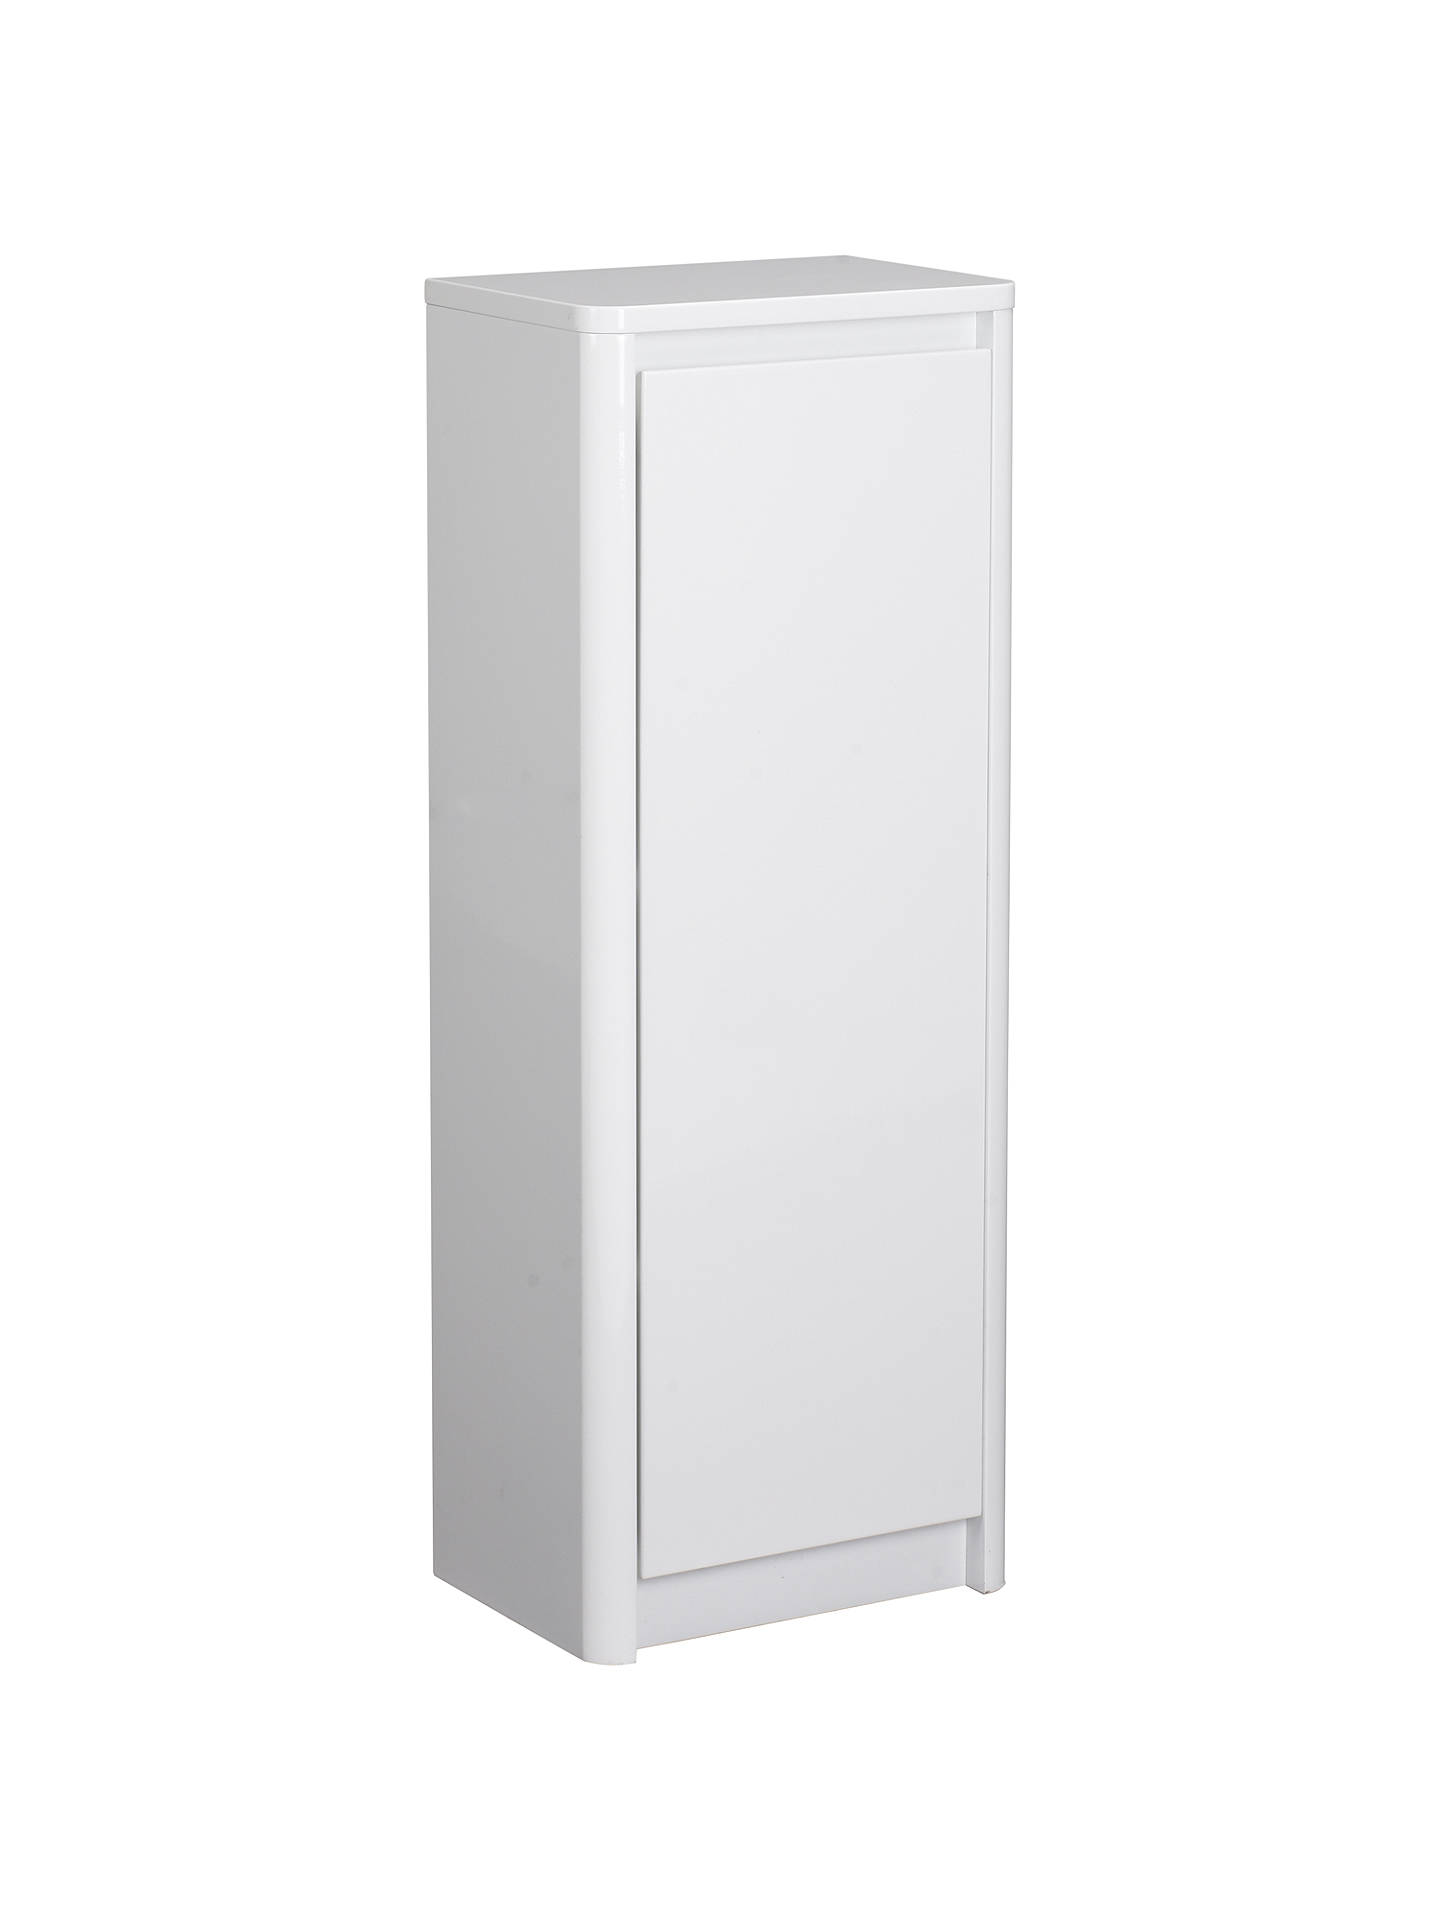 John Lewis Gloss Curve Free Standing Bathroom Floor Cabinet at John ...